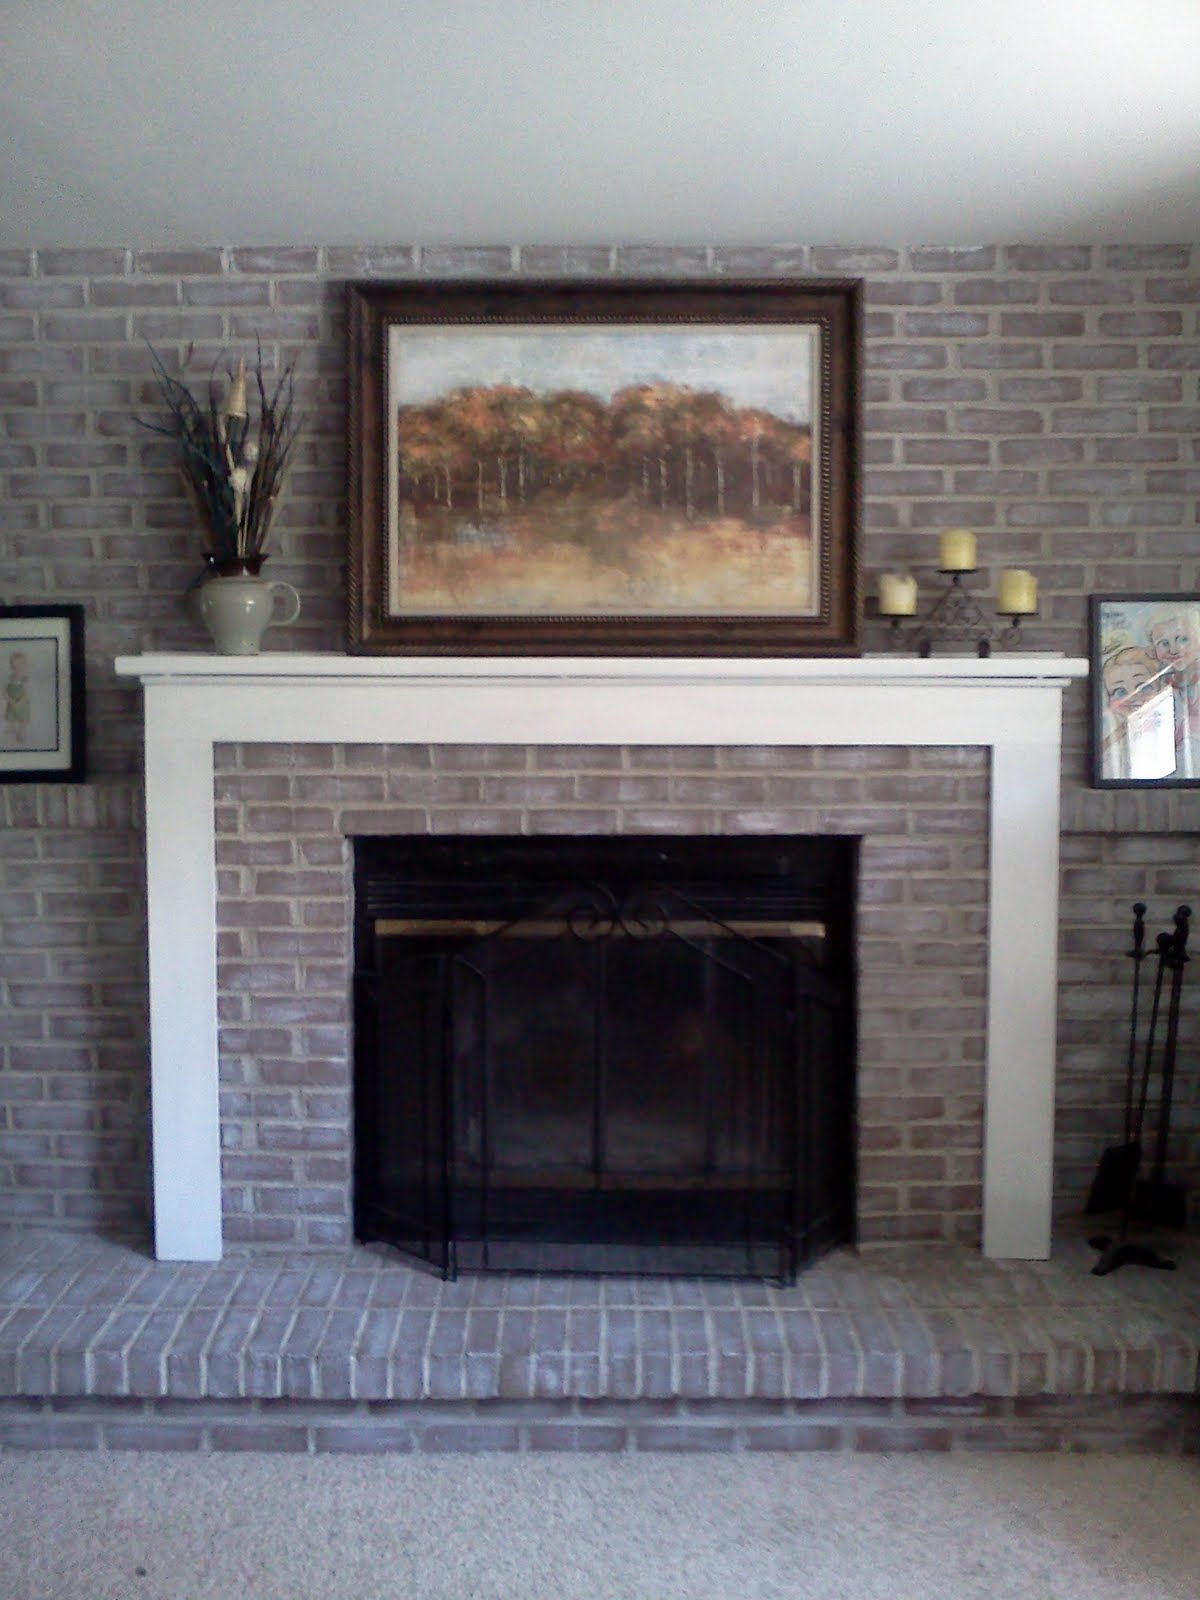 Fireplace Home Decor Decorator Diy With Decoration Designs Around Target Brick Remodel Dallas Texas Wall Living Room